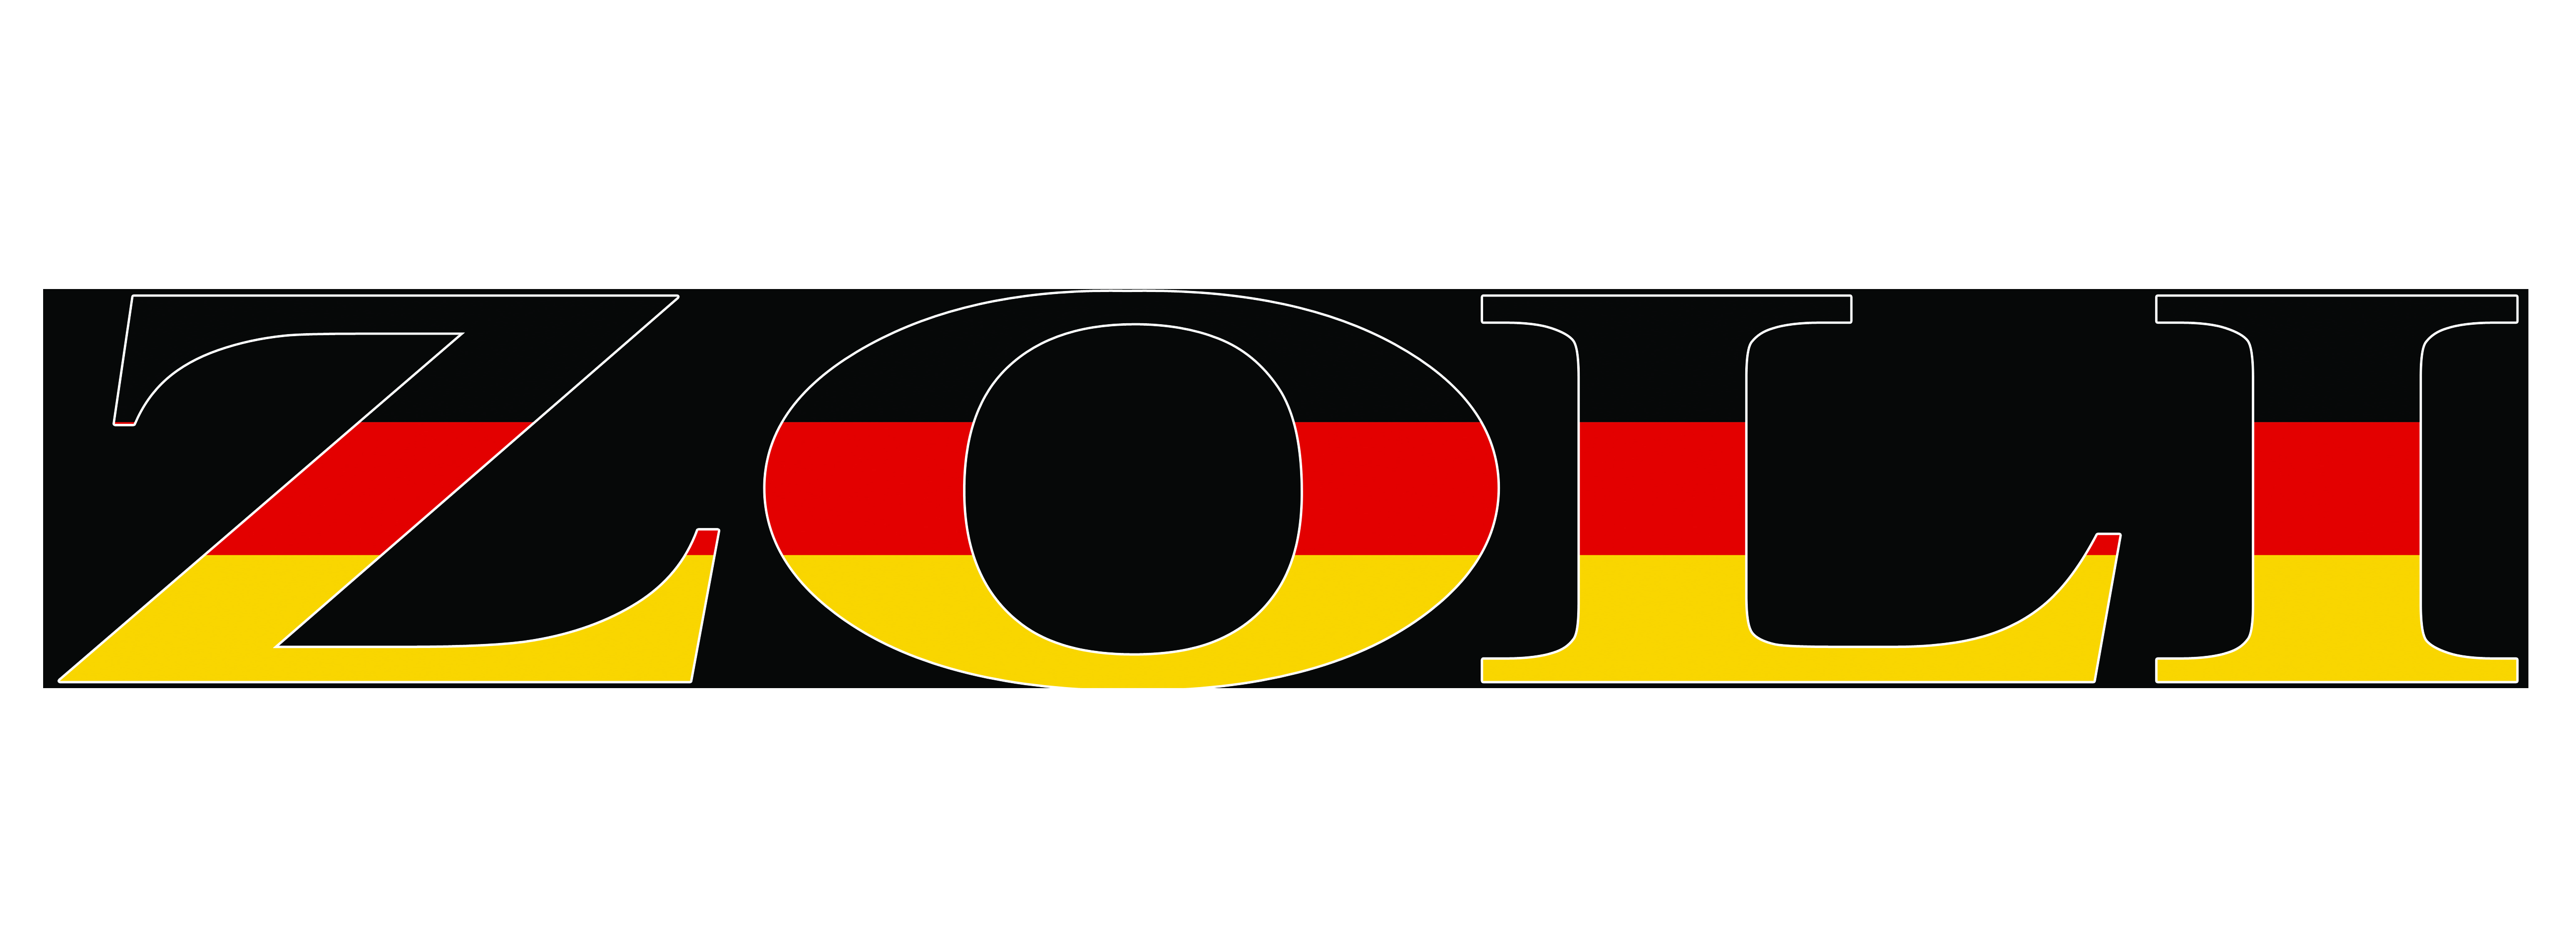 Zoli barrel sticker with german flag